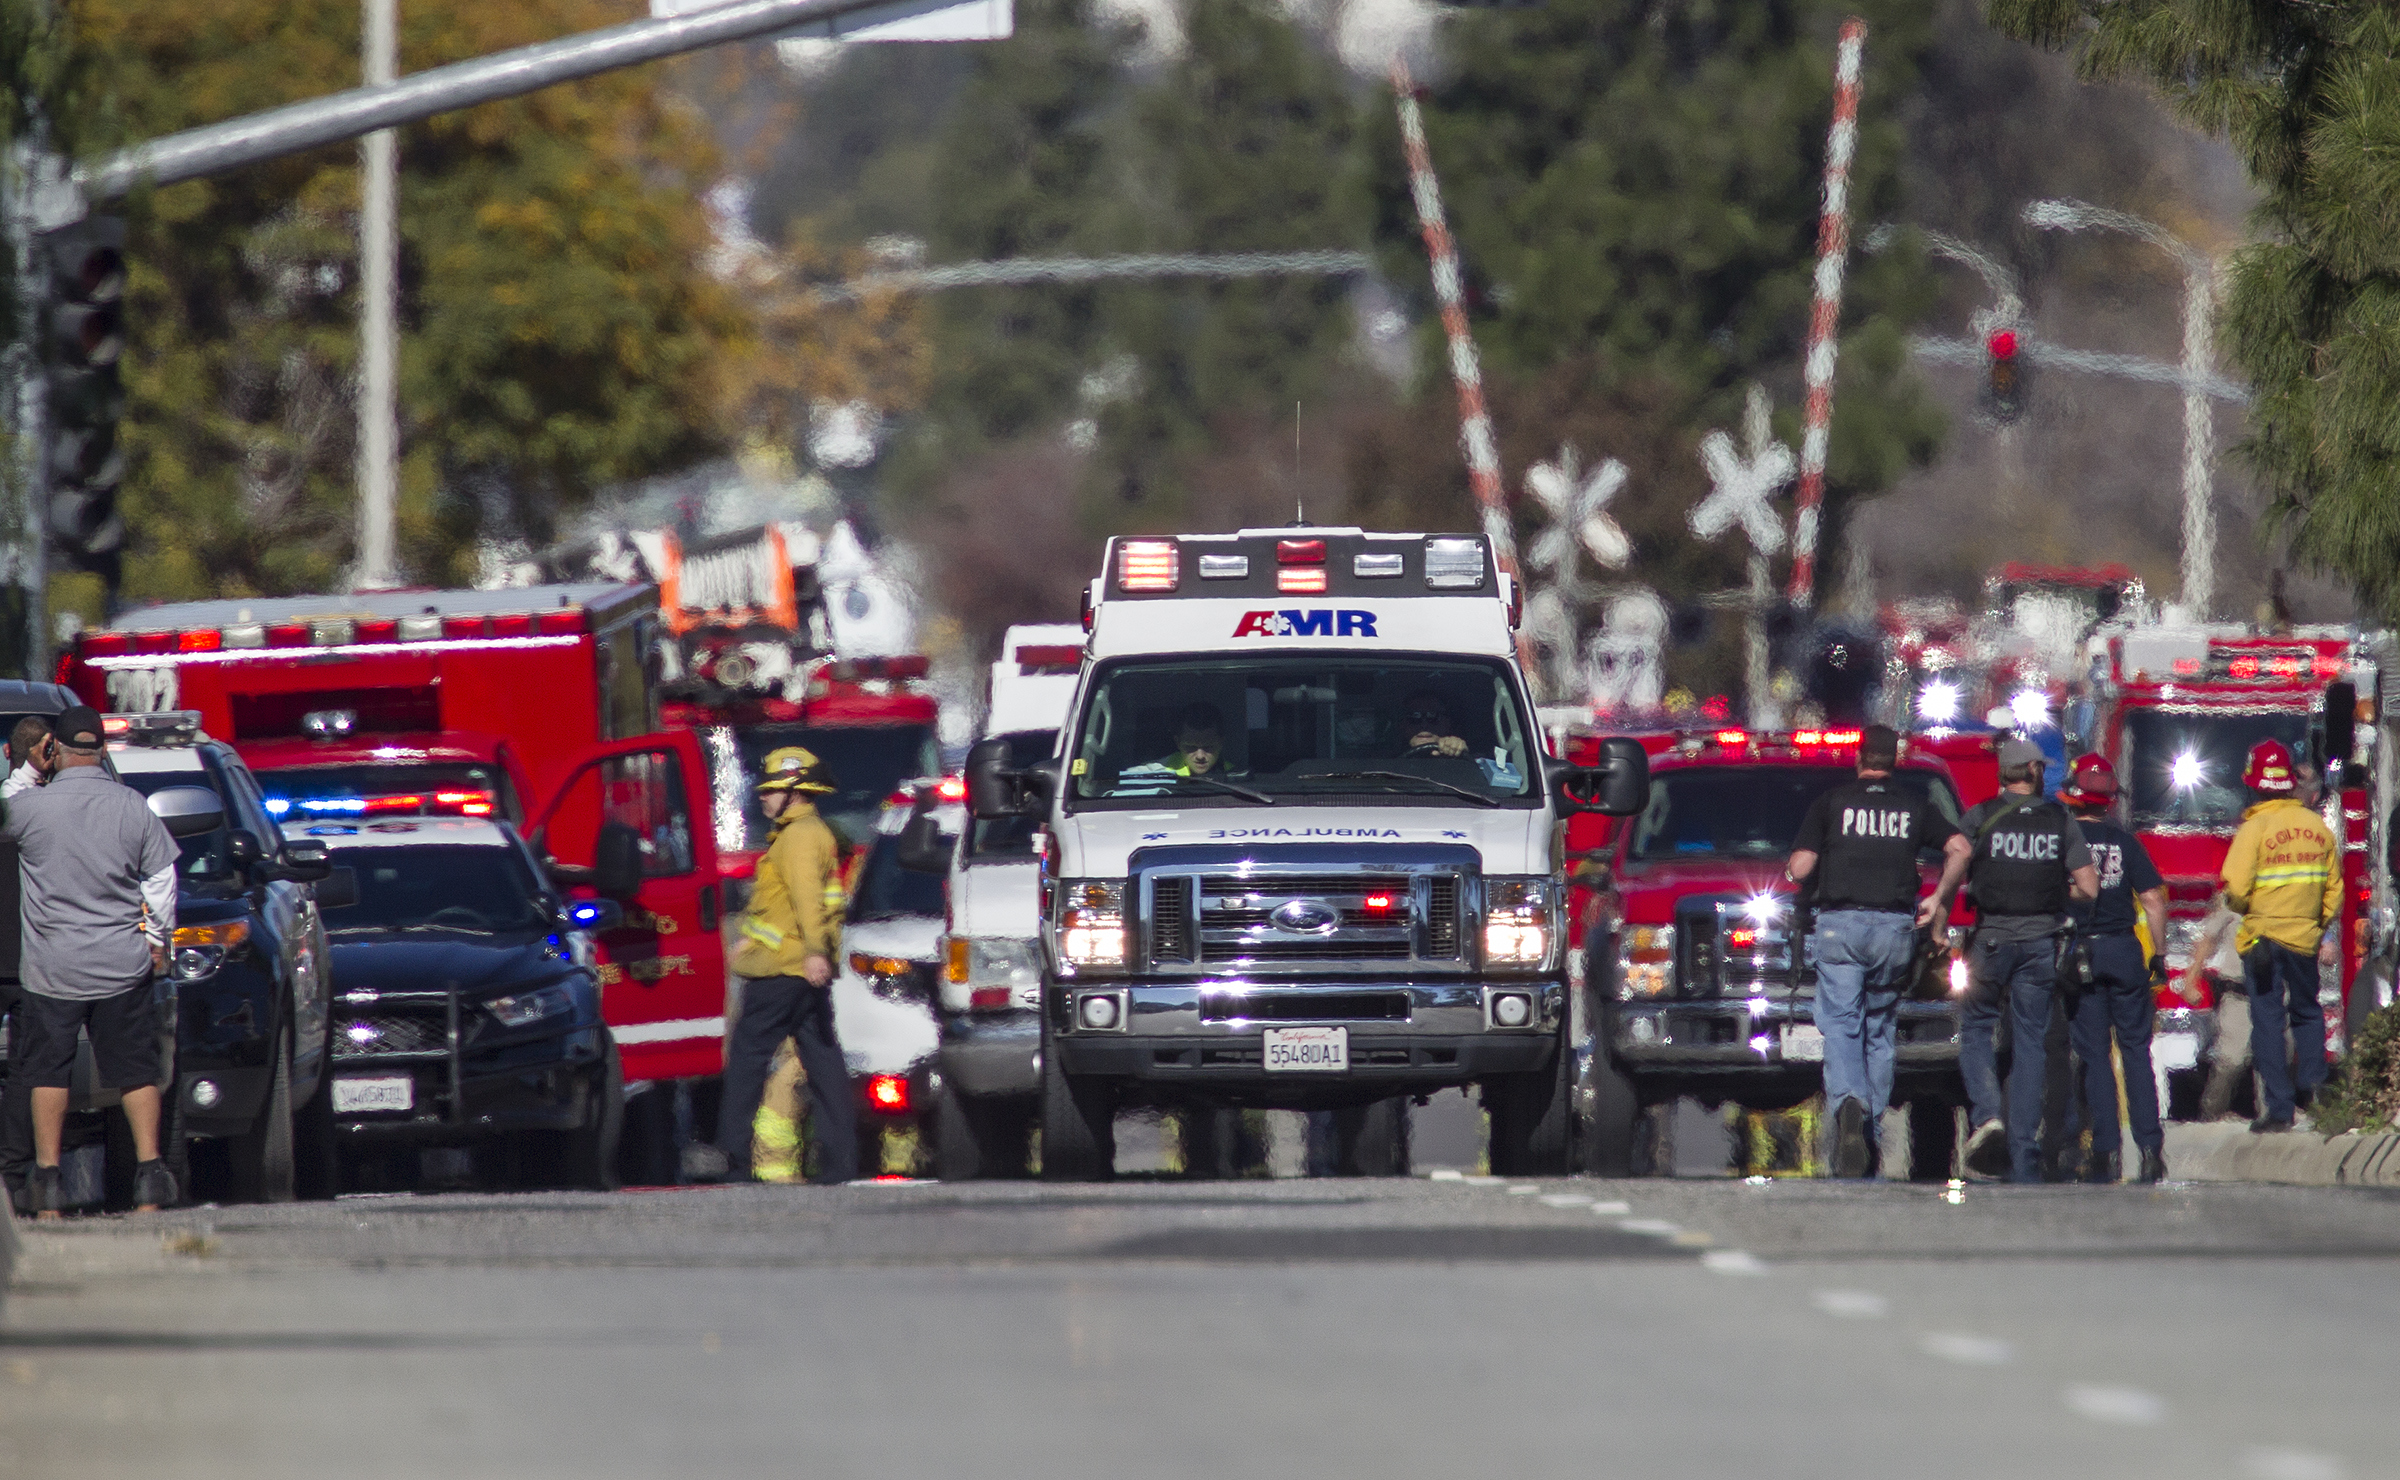 Mass Shooting In San Bernardino Leaves At Least 12 Dead, 30 Wounded